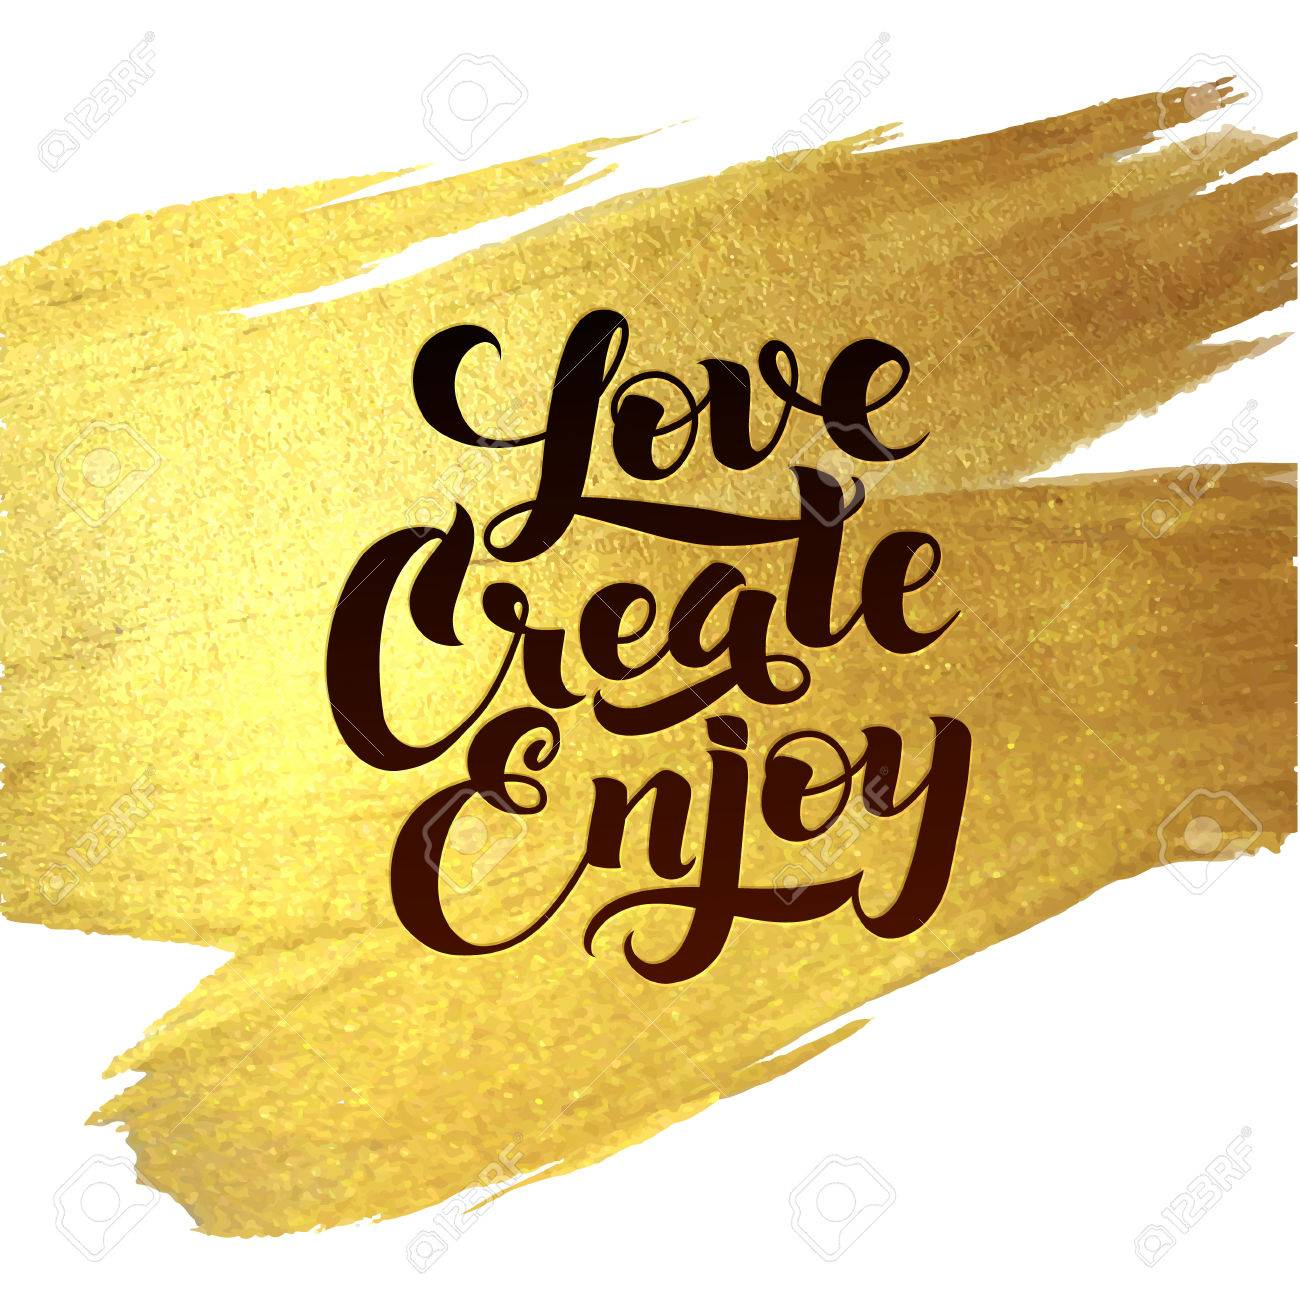 Gold Foil Love Create Enjoy Be Positive Calligraphic Message ...